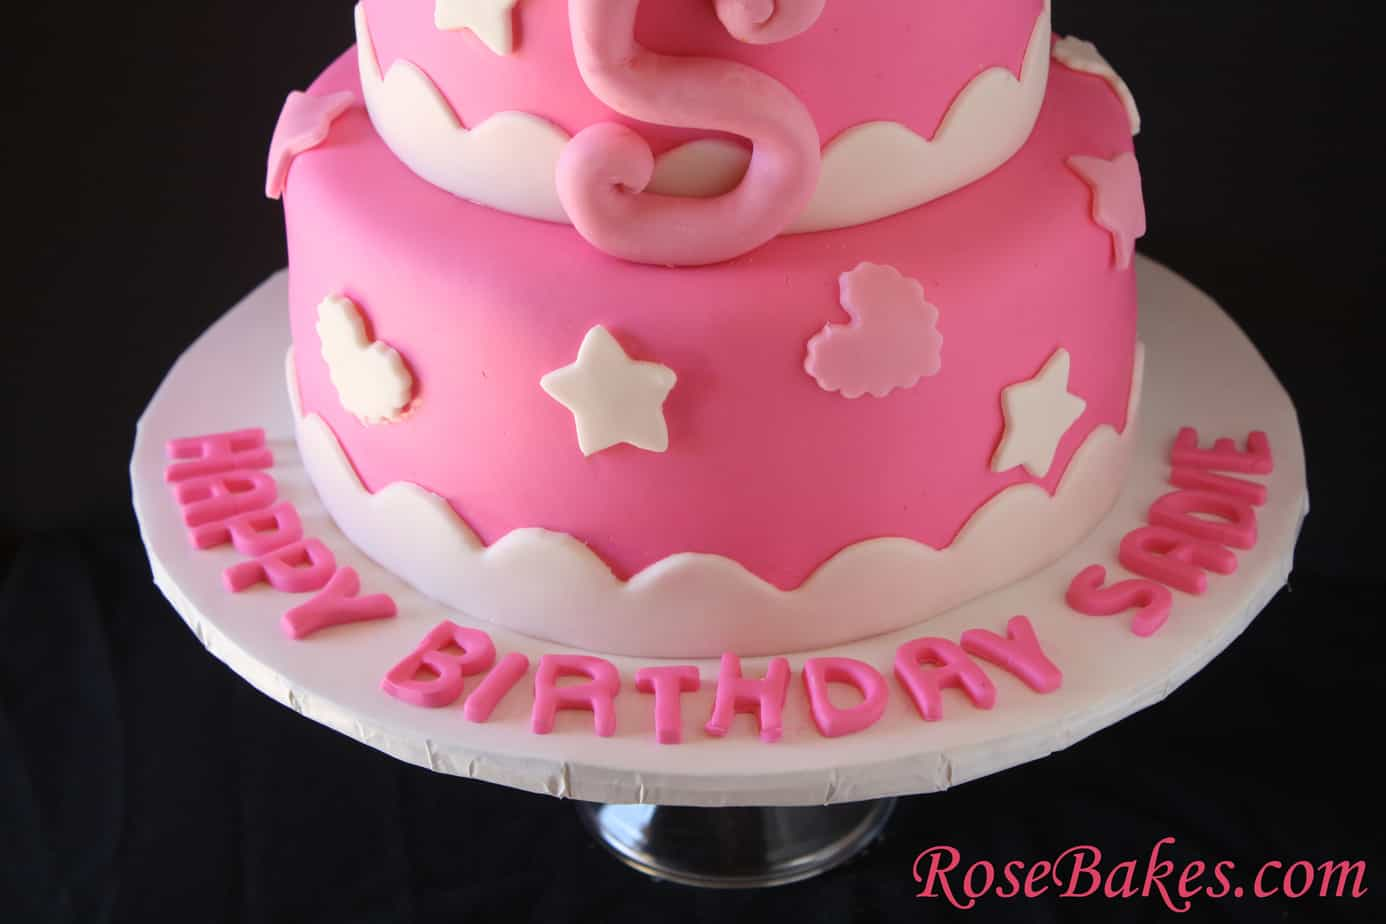 Free Birthday Cake Images With Name Editor : Birthday Cake With Name Edit Online Free New Calendar ...